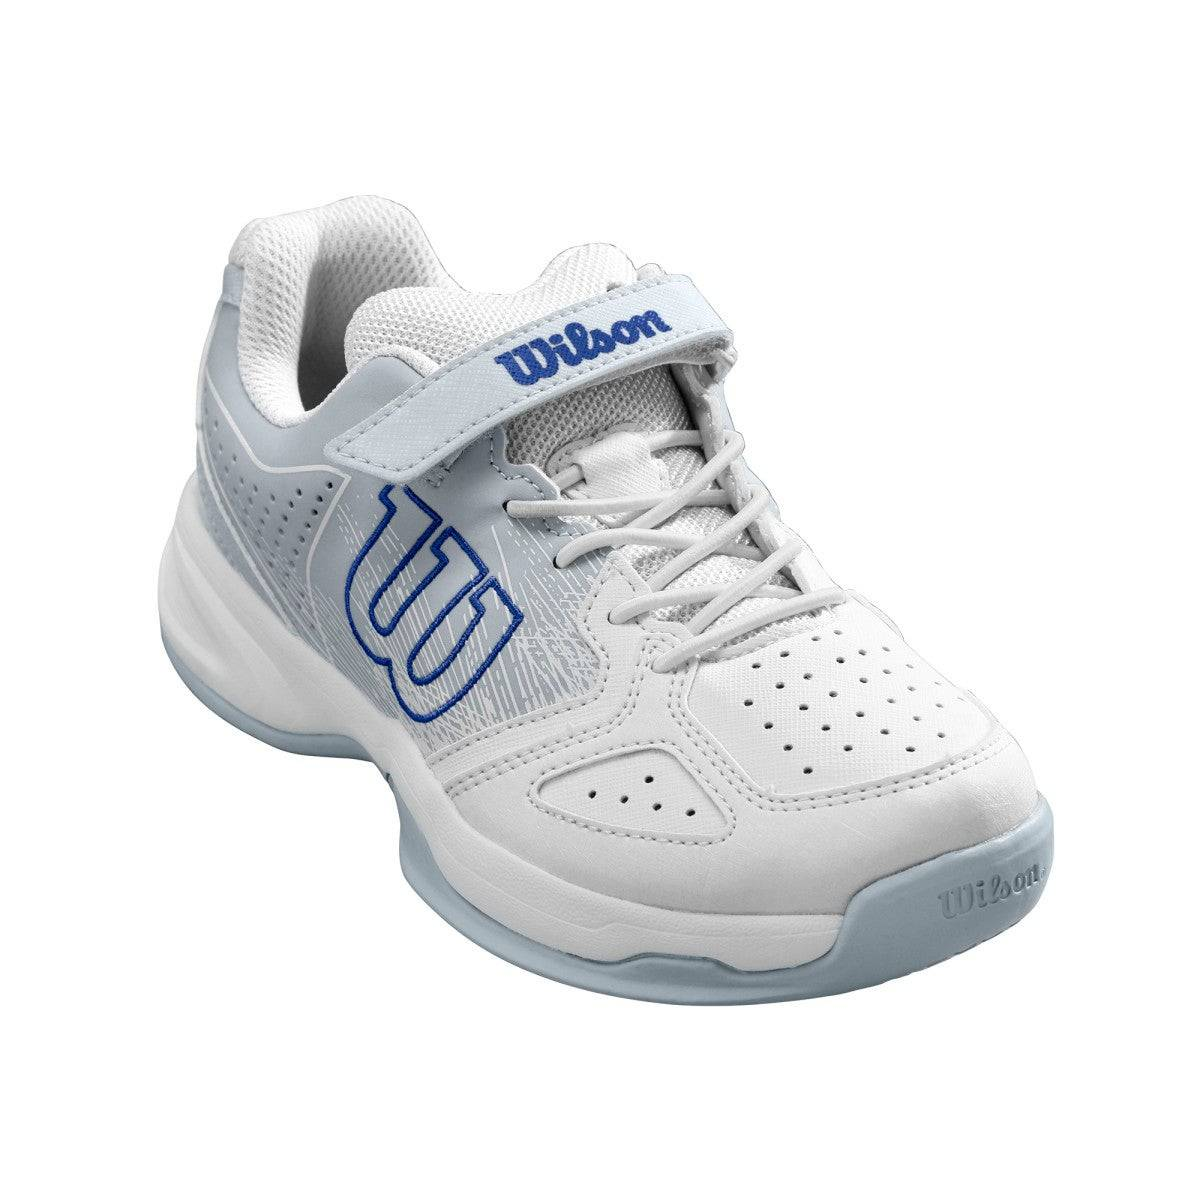 Wilson Junior Kaos K Tennis Shoes in White / Pearl Blue / Dazzling Blue - Size: 12 Y  - Unisex - White/Pearl Blue/Dazzling Blue - Size: 12 Y